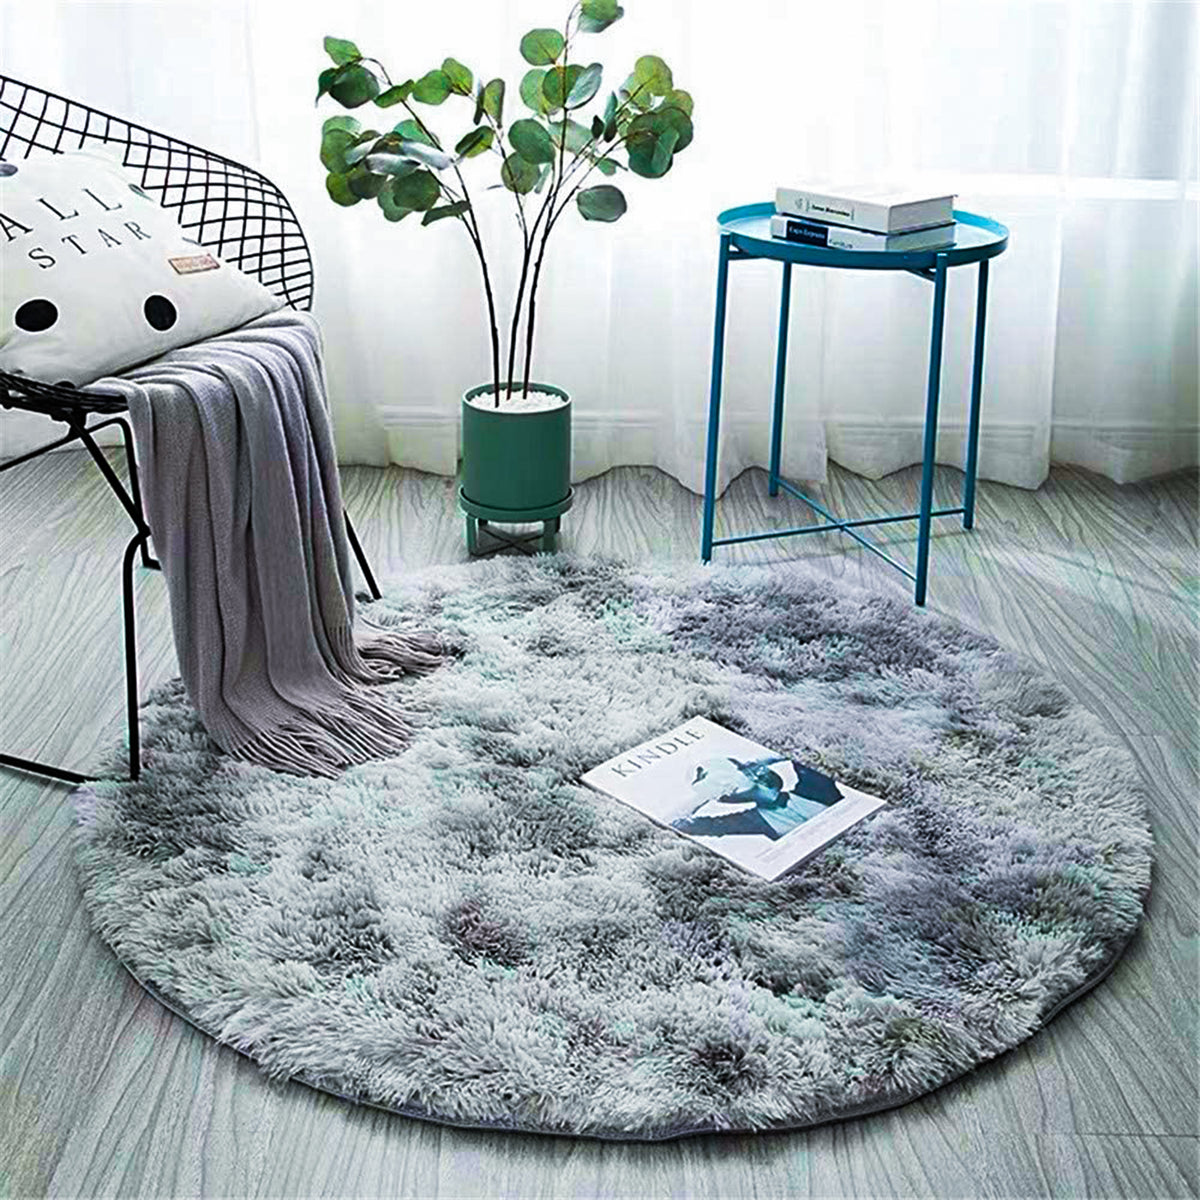 Fluffy Round Carpet